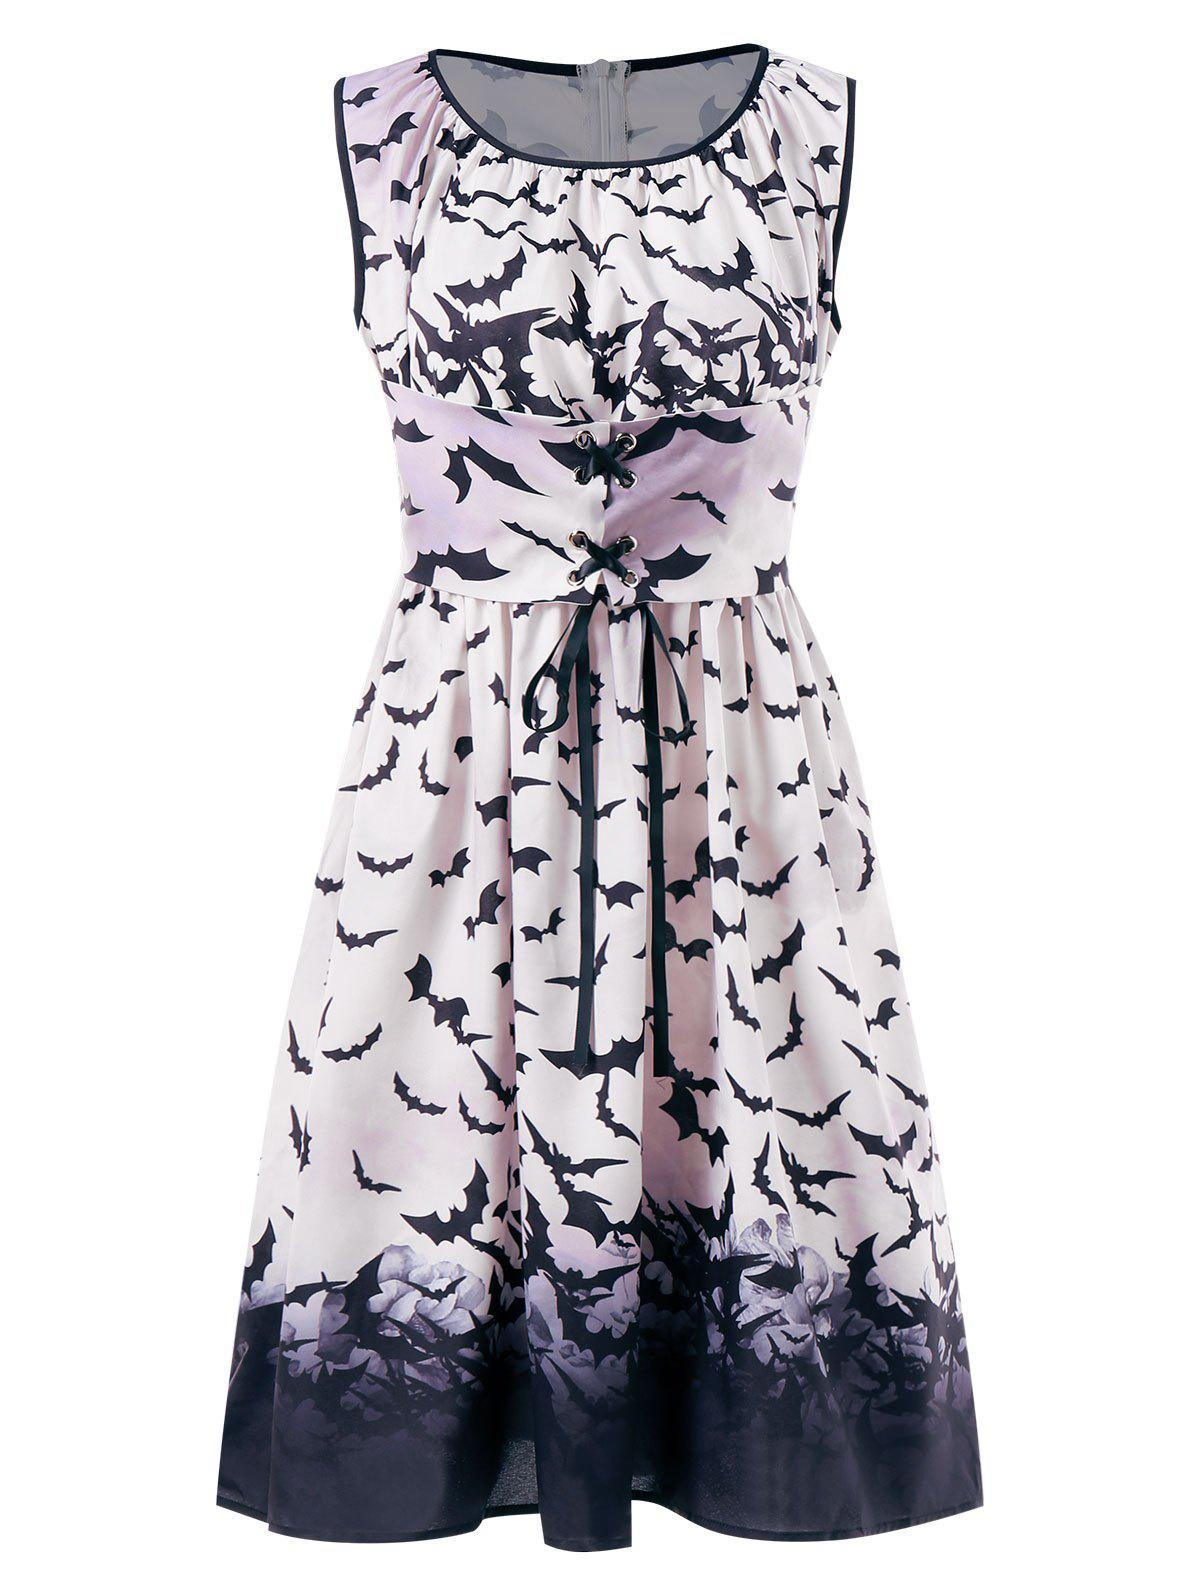 Lace Up Front Halloween Bats Print Dress - multicolor XL